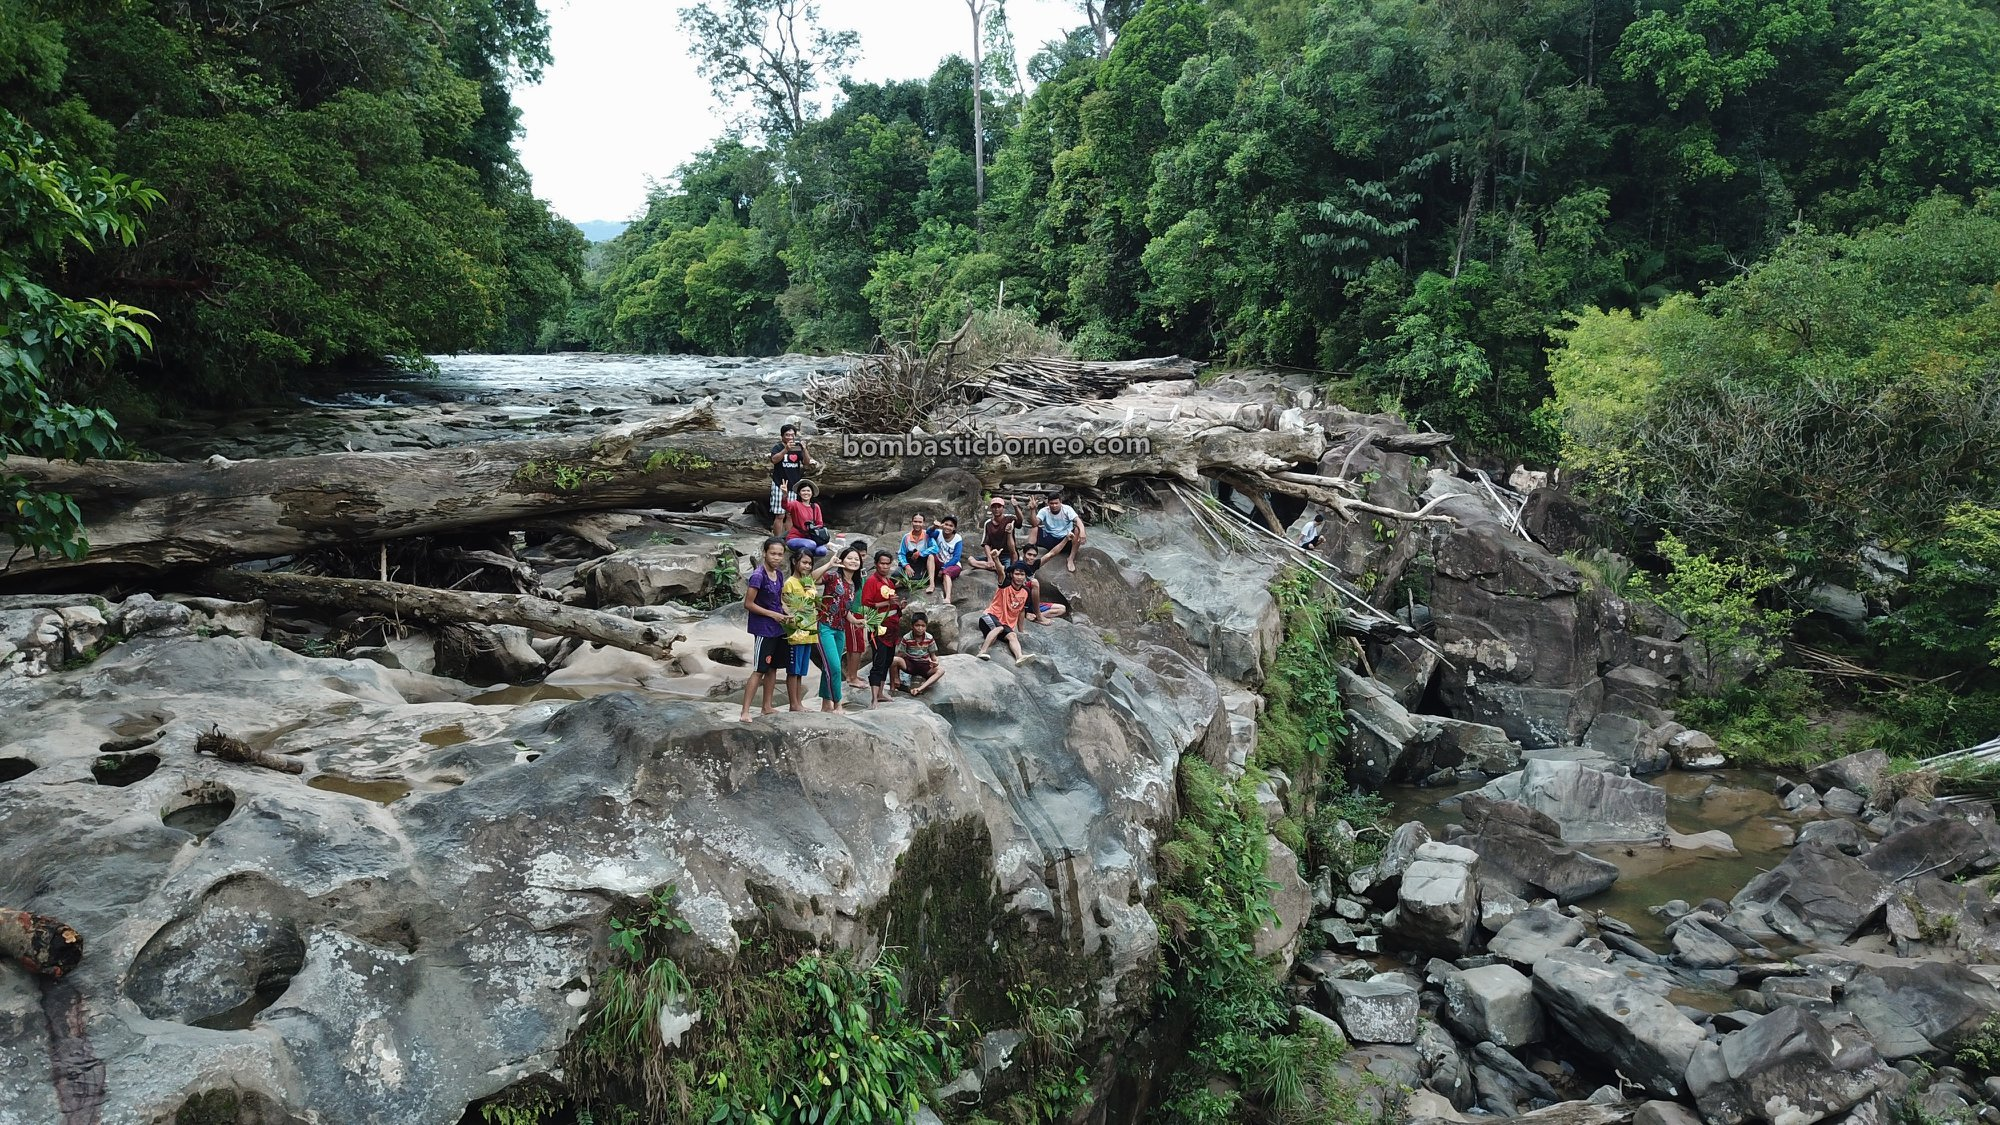 Air Terjun, Waterfall, Dusun Simpang Empat, adventure, nature, outdoor, exploration, Indonesia, Bengkayang, Seluas, tourist attraction, travel guide, Trans Border, Borneo, 探索婆罗洲瀑布, 印尼西加里曼丹,